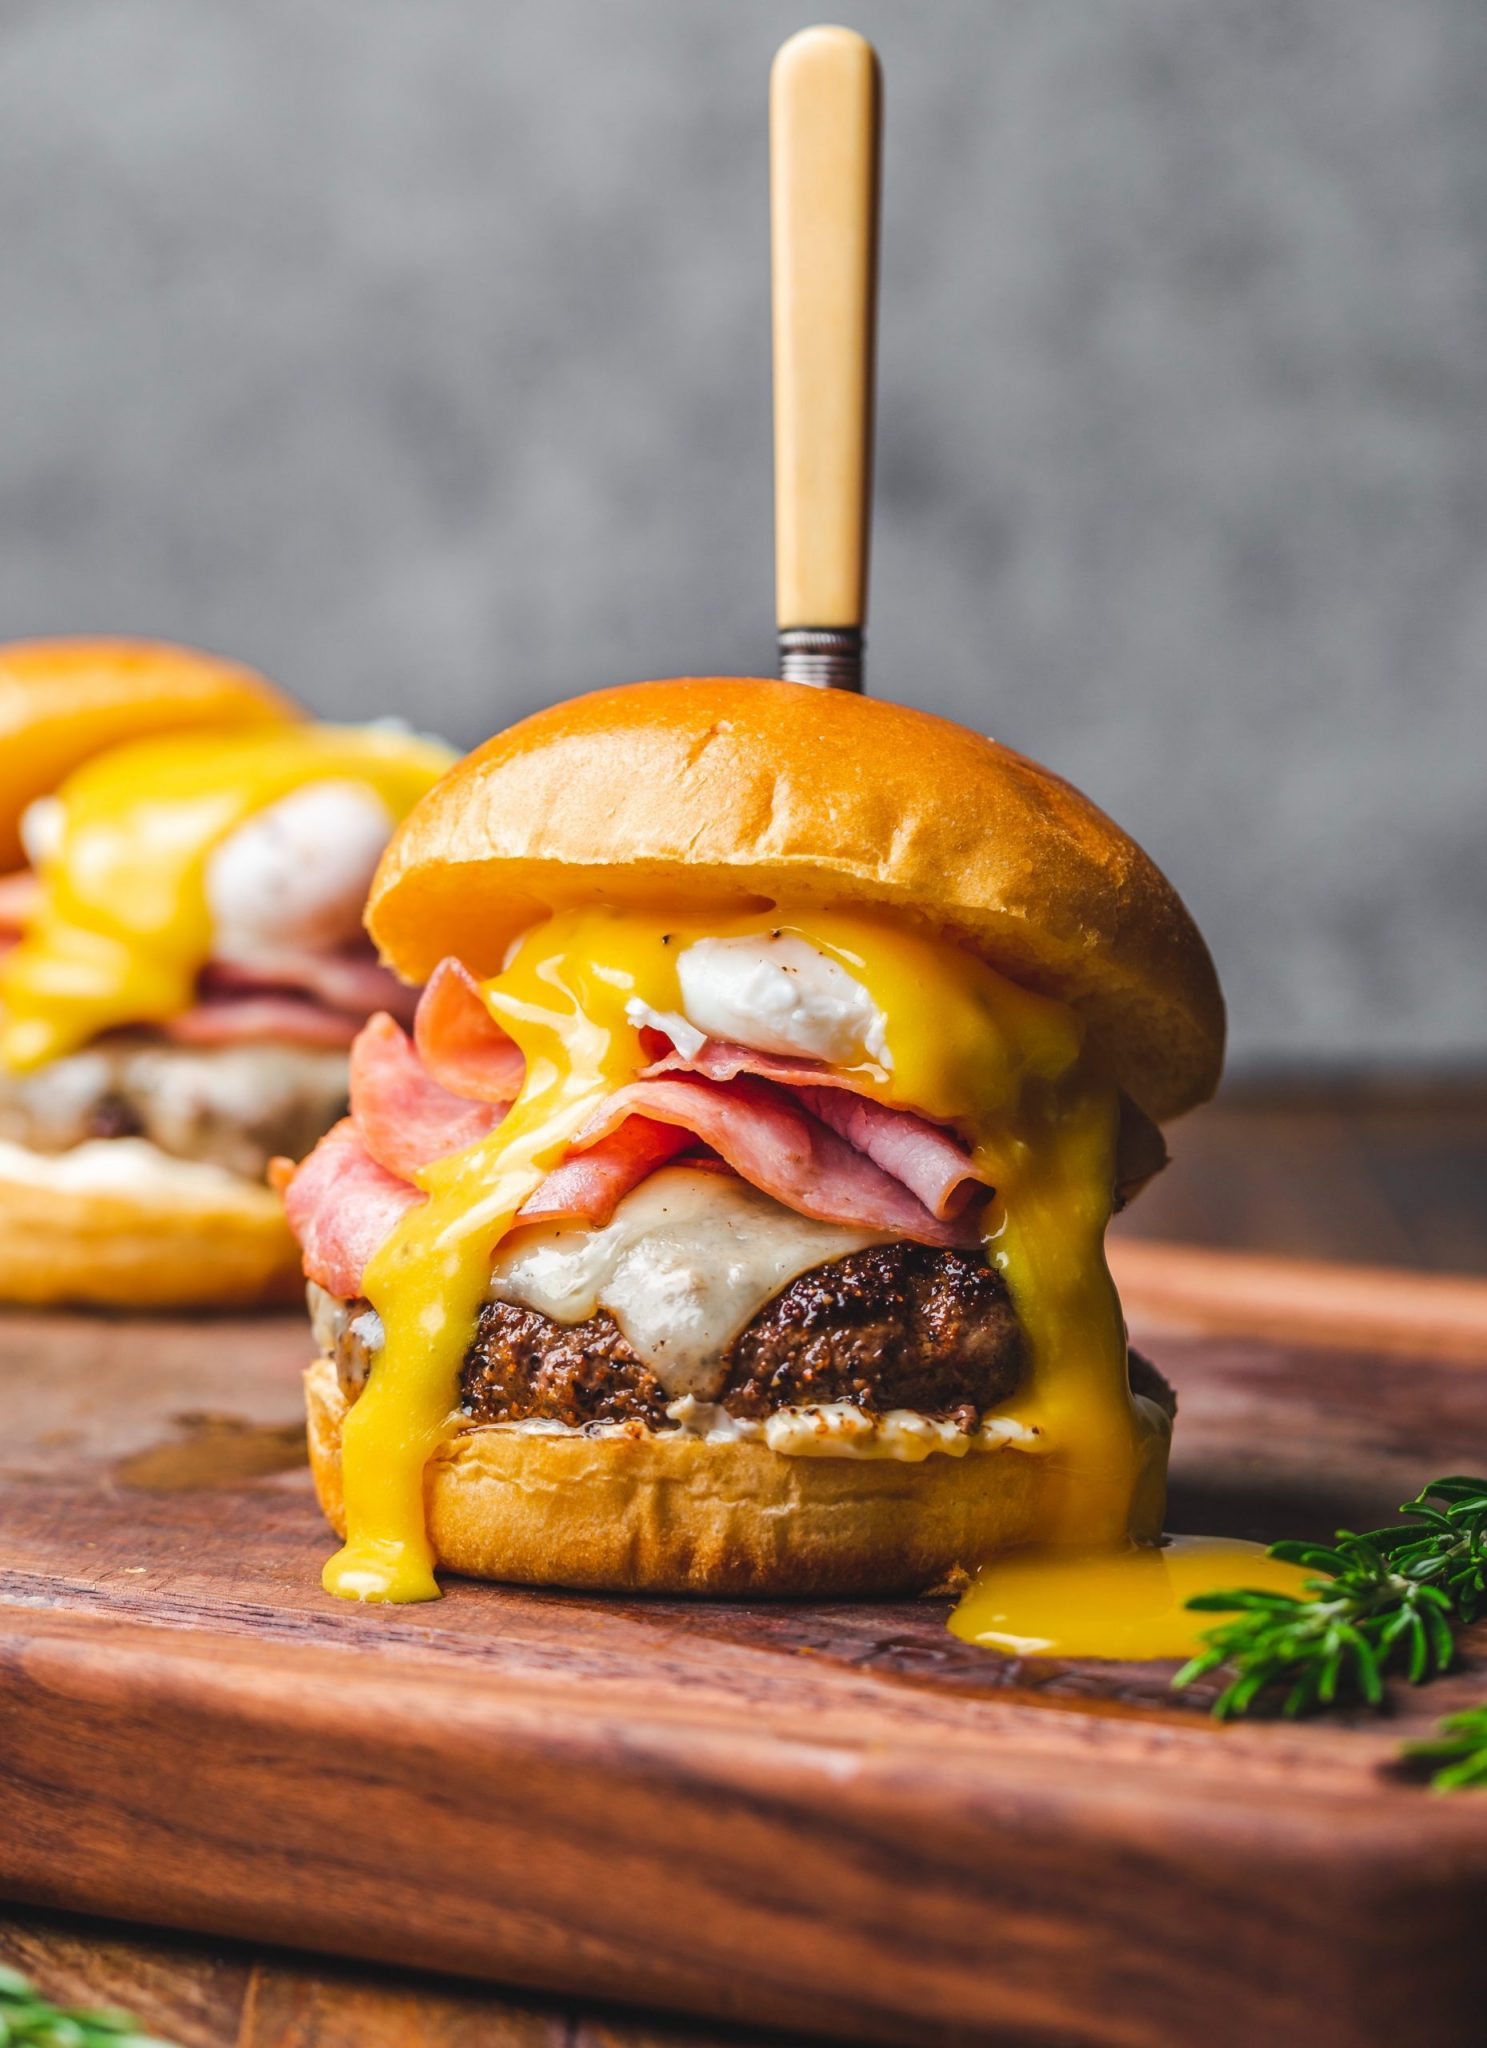 An eggs benedict burger, similar to what you can find in Au Cheval, Chicago.